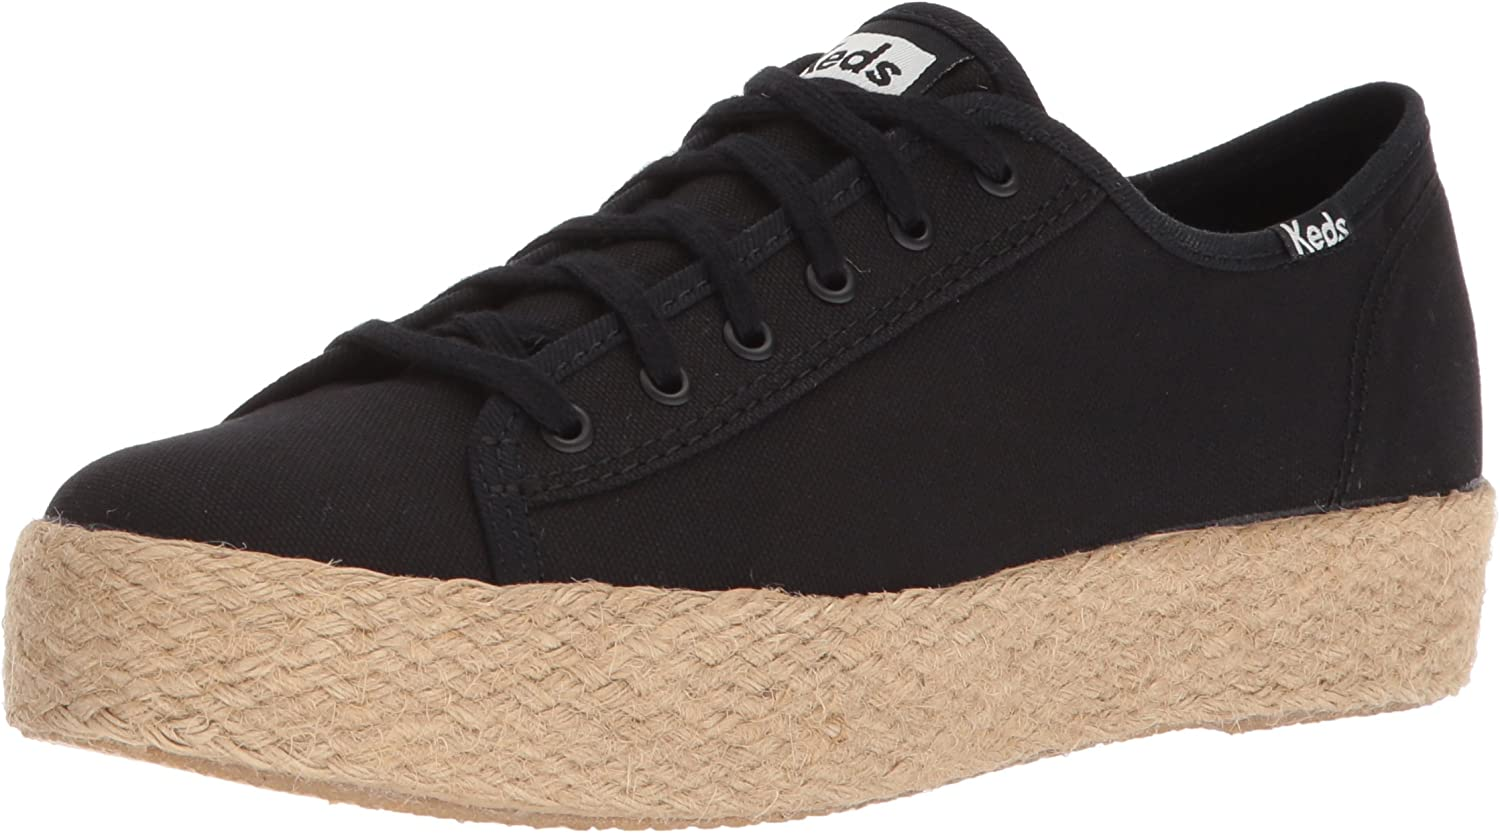 Keds Women's Triple Kick Jute